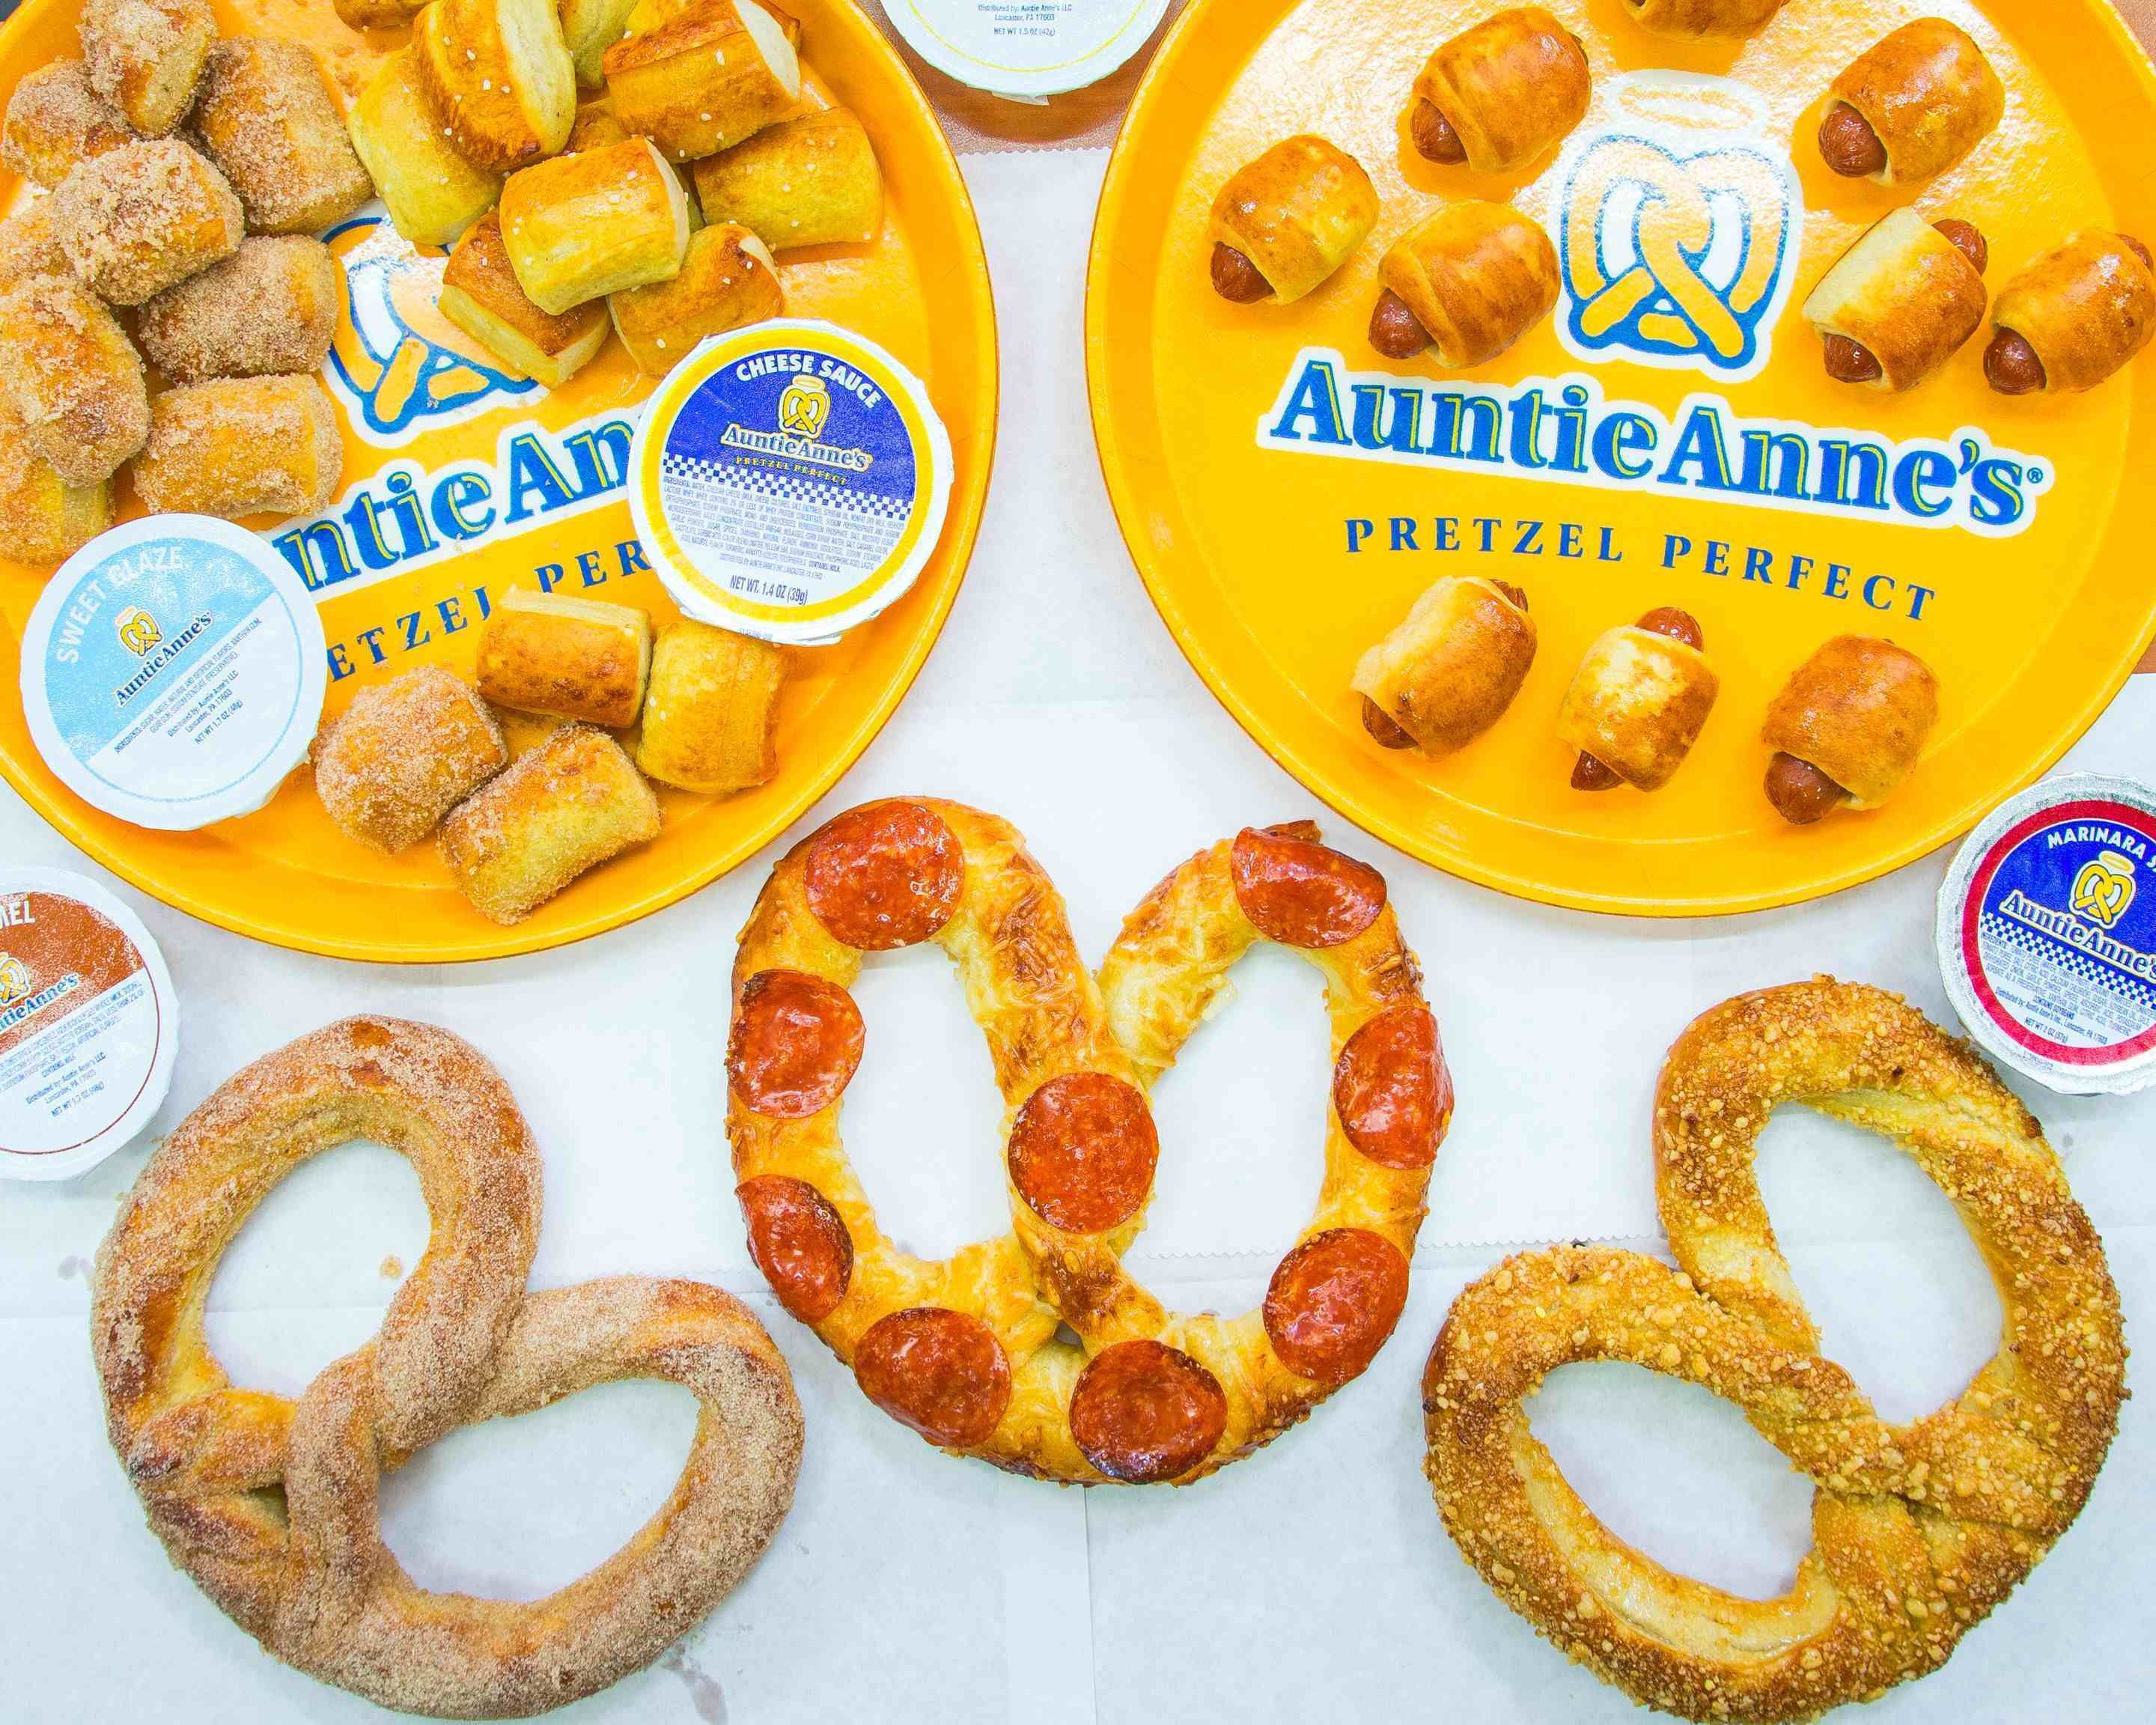 Auntie Anne's (5506 New Fashion Way, Ste 325)